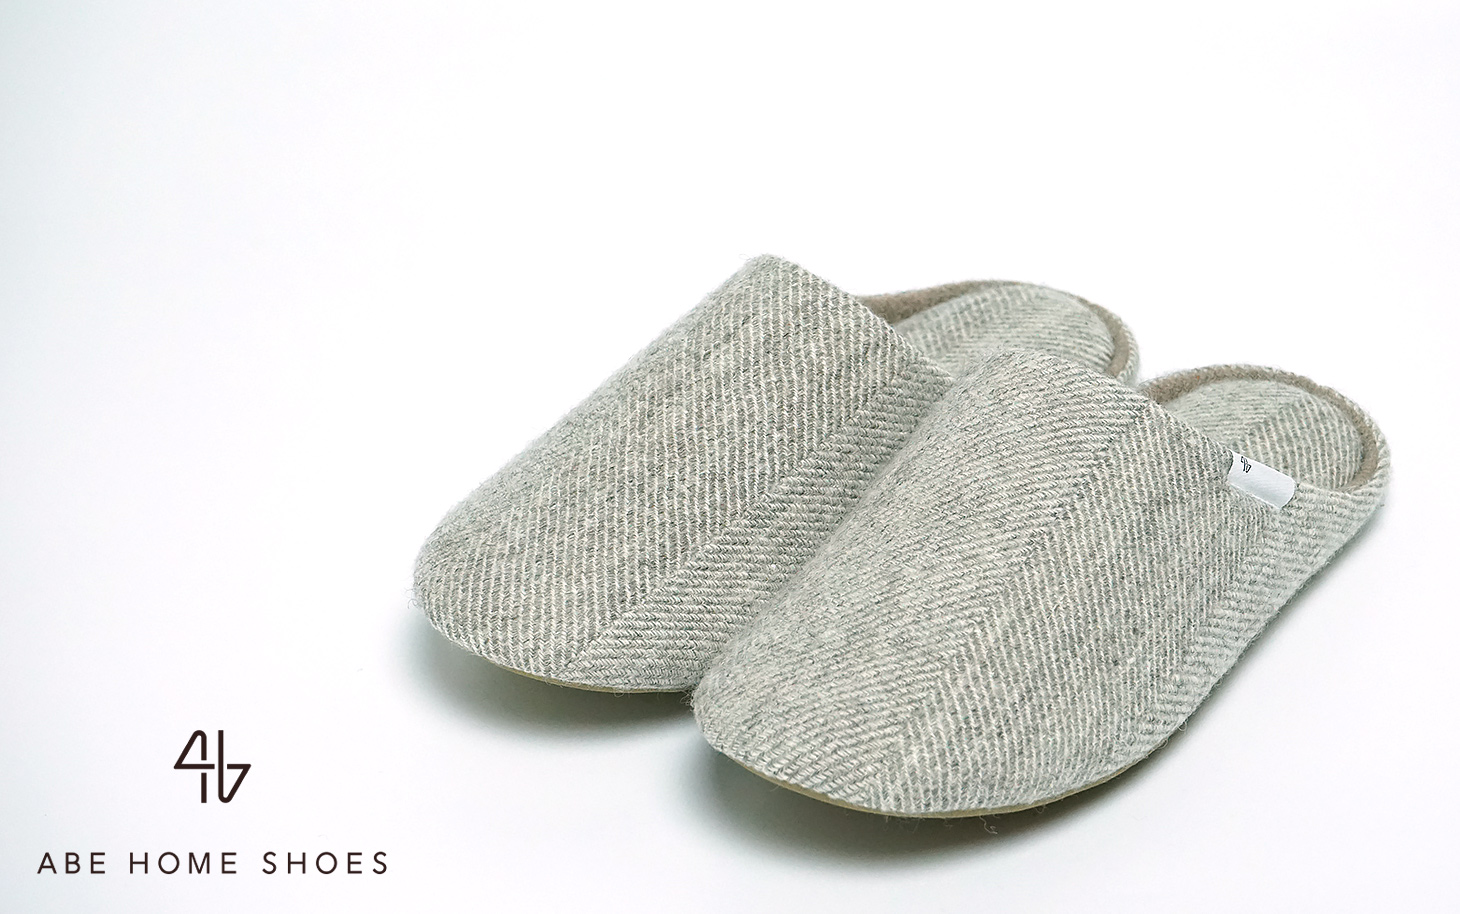 ABE HOME SHOES 阿部産業 ウールホームシューズ ウールスリッパ